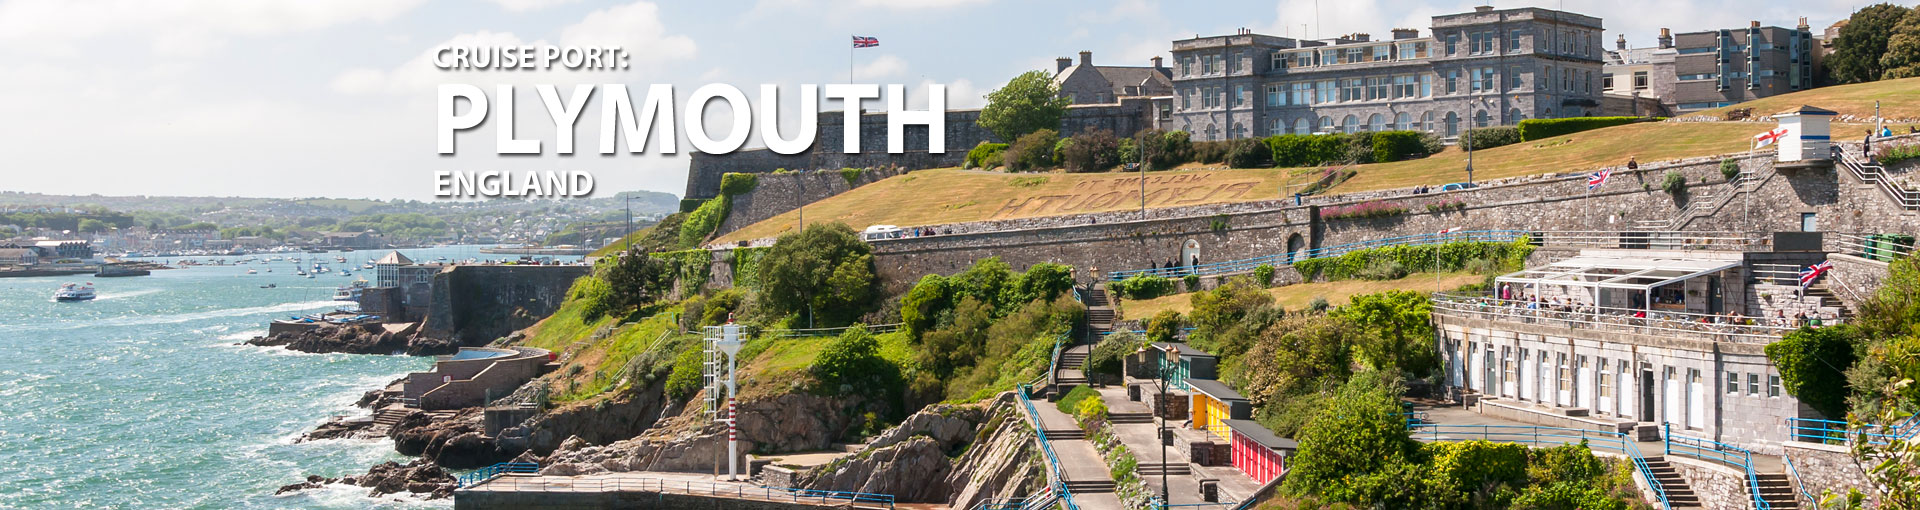 Cruises to Plymouth, England